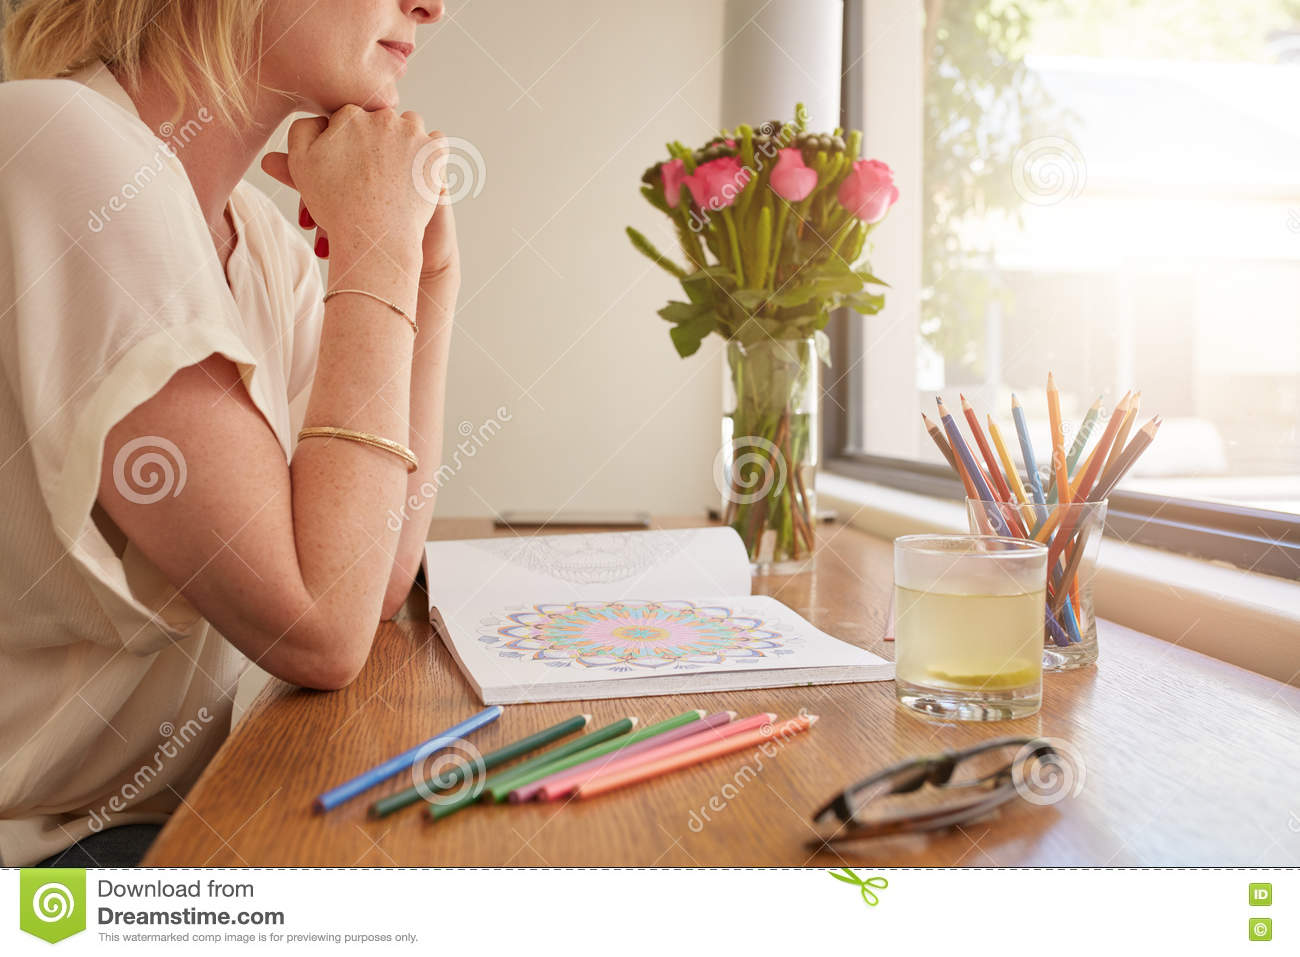 Woman sitting at a table and thinking with adult coloring book